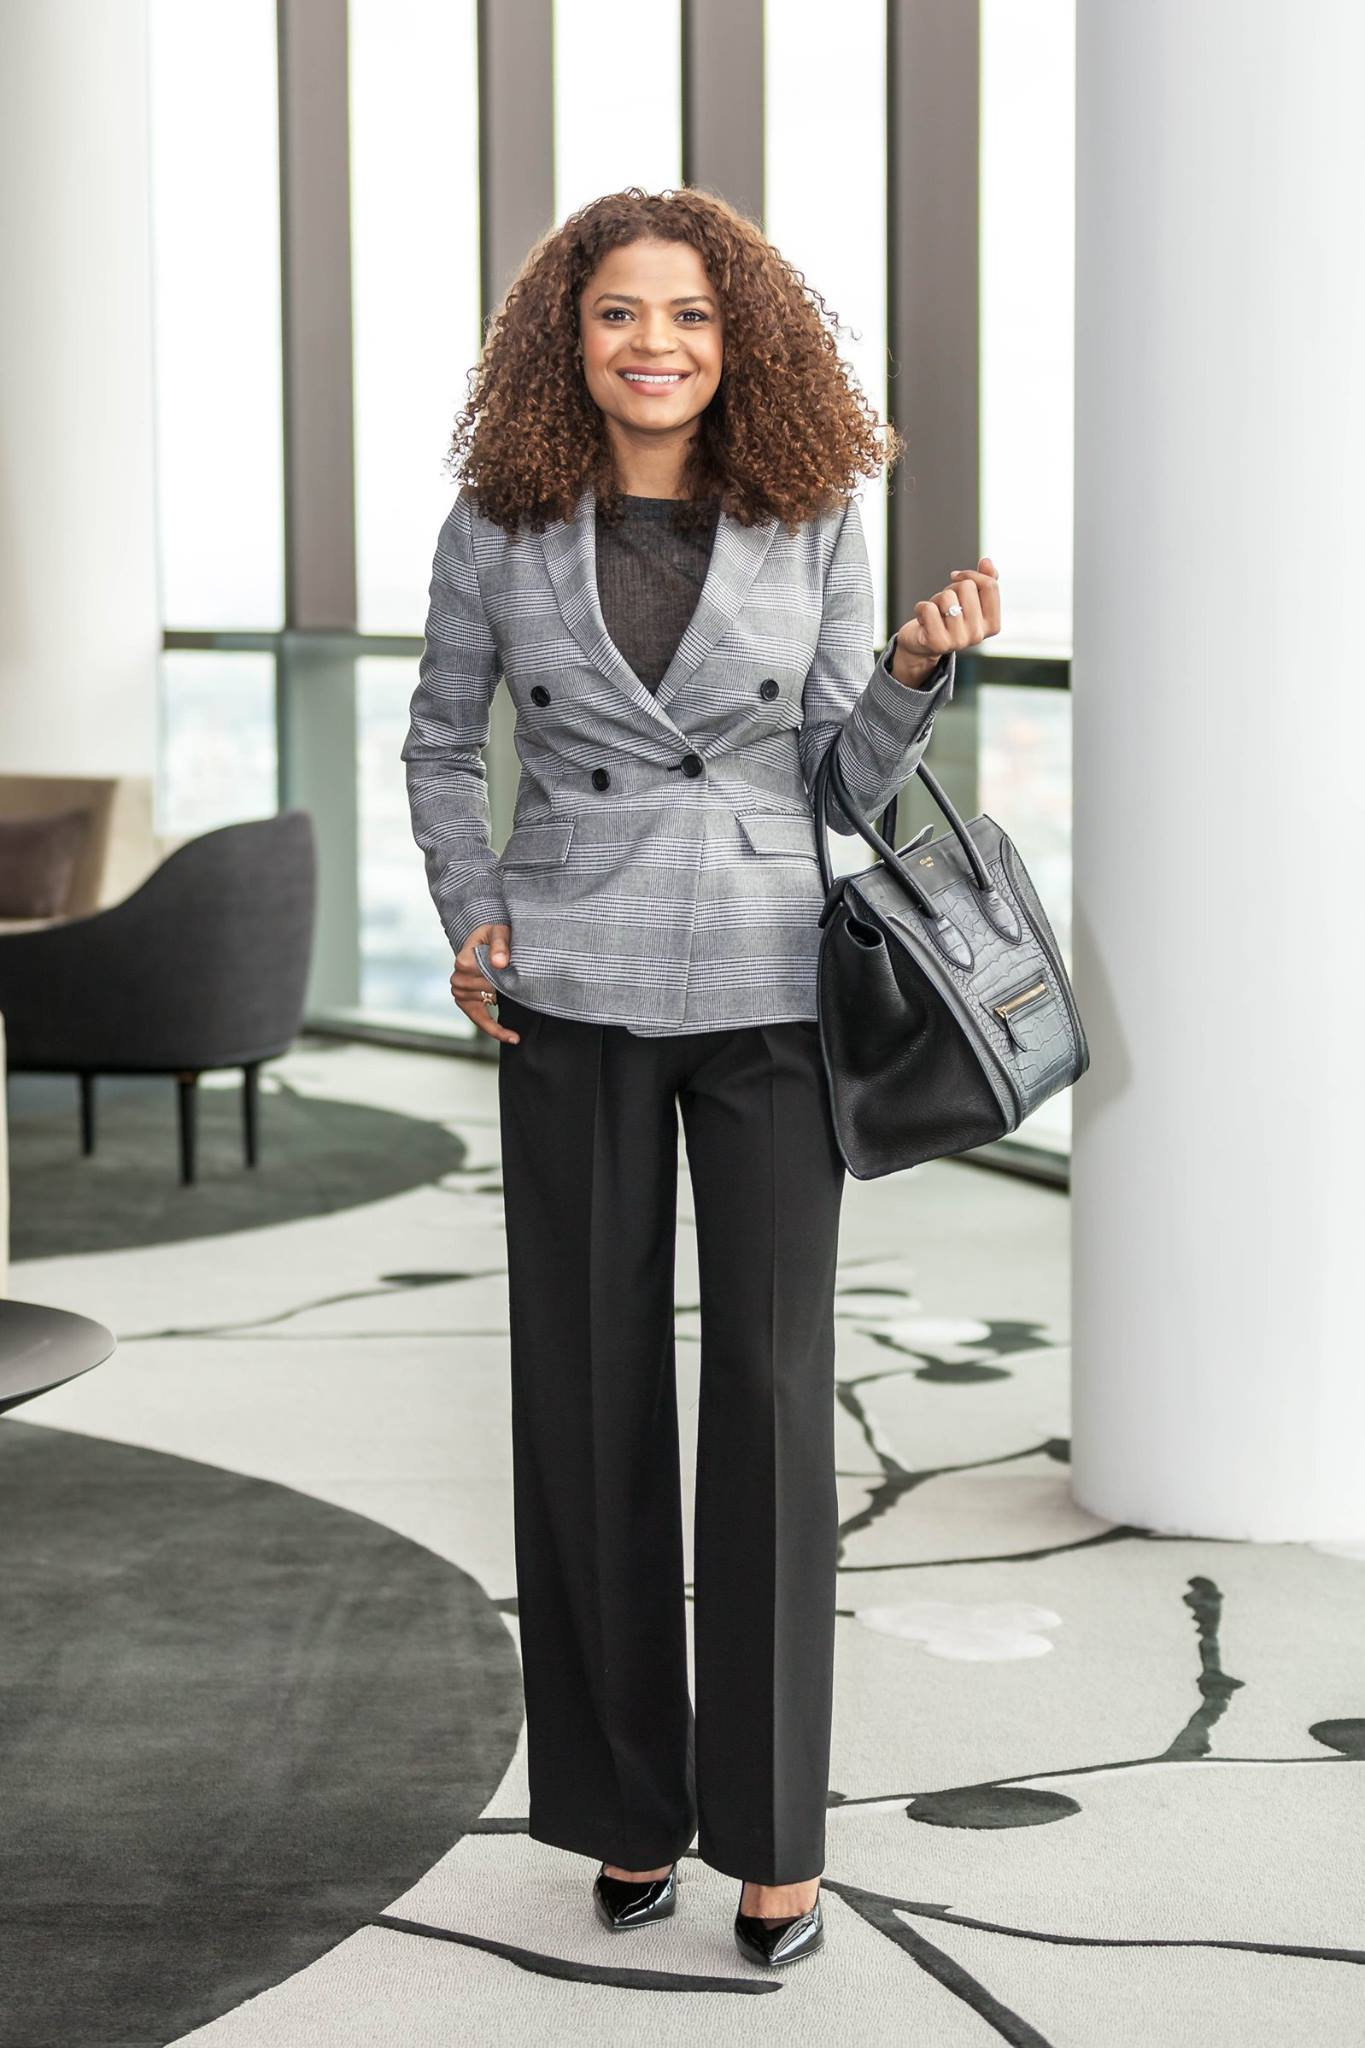 Victoria Latu, Office success, Stlylish workwear tips